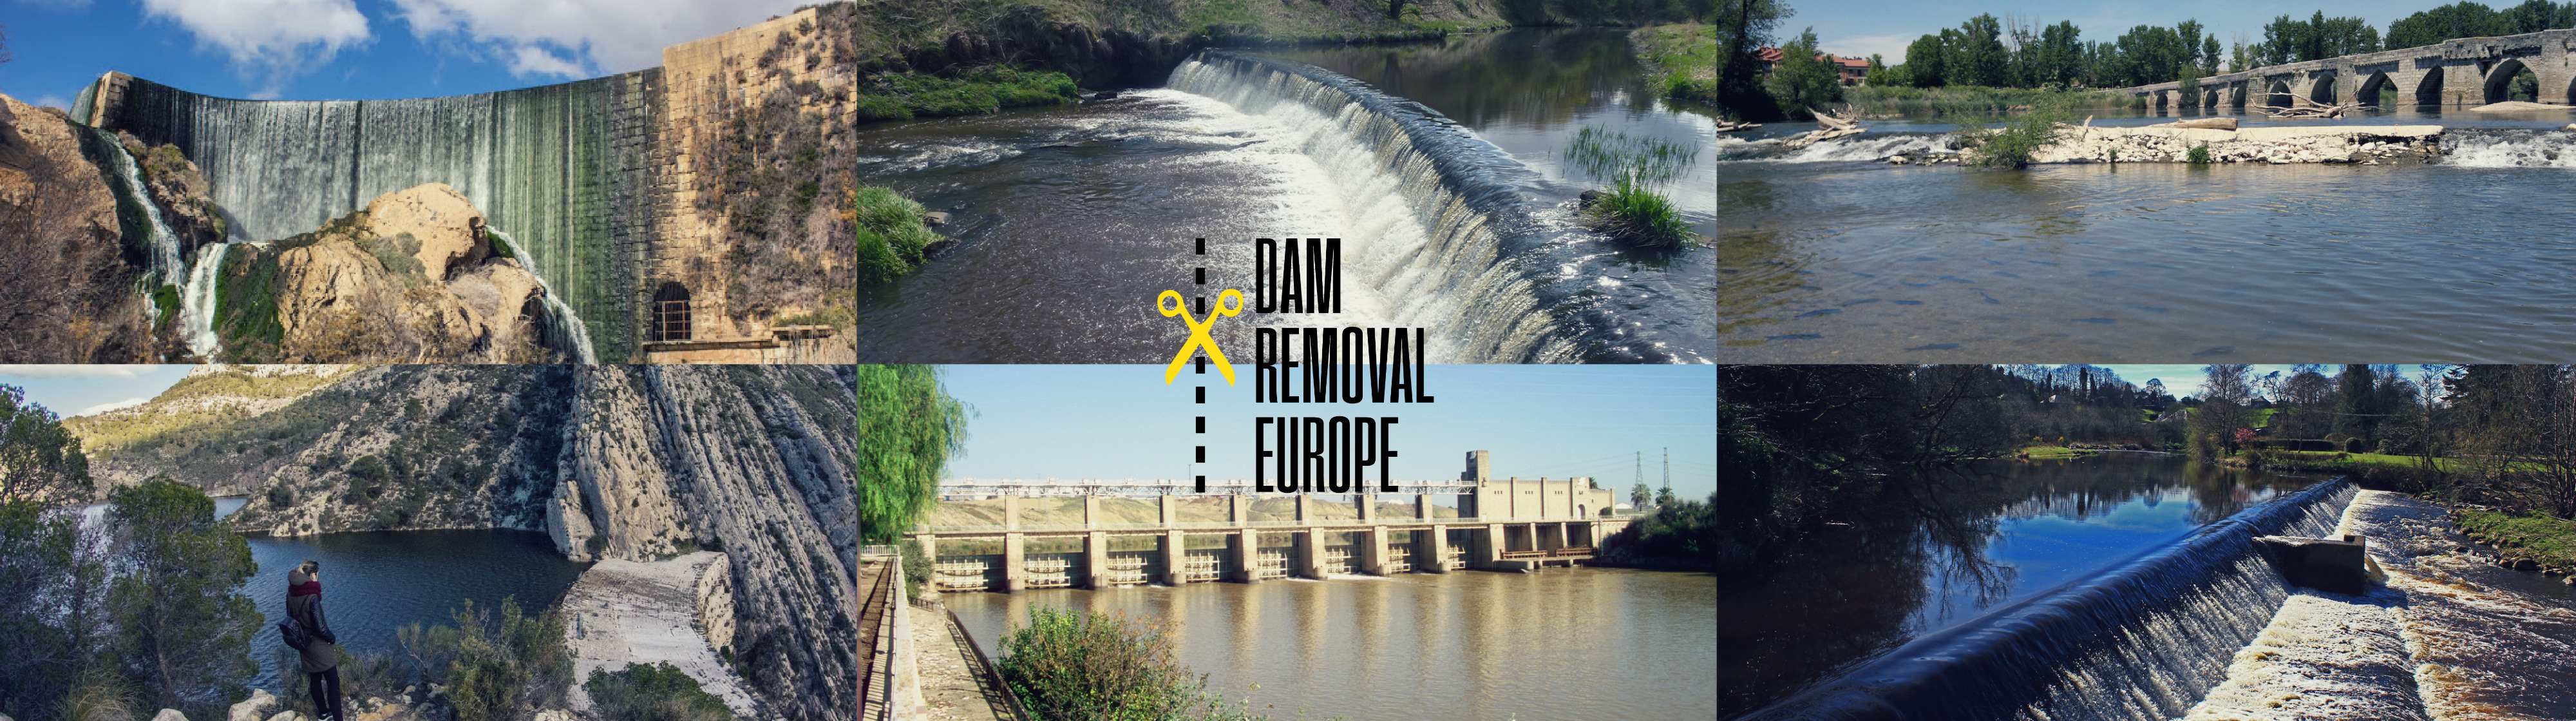 Underpinned by the Water Framework Directive's ambitious objectives and visionary approach to water management, the pace of European dam removal is now slowly increasing.